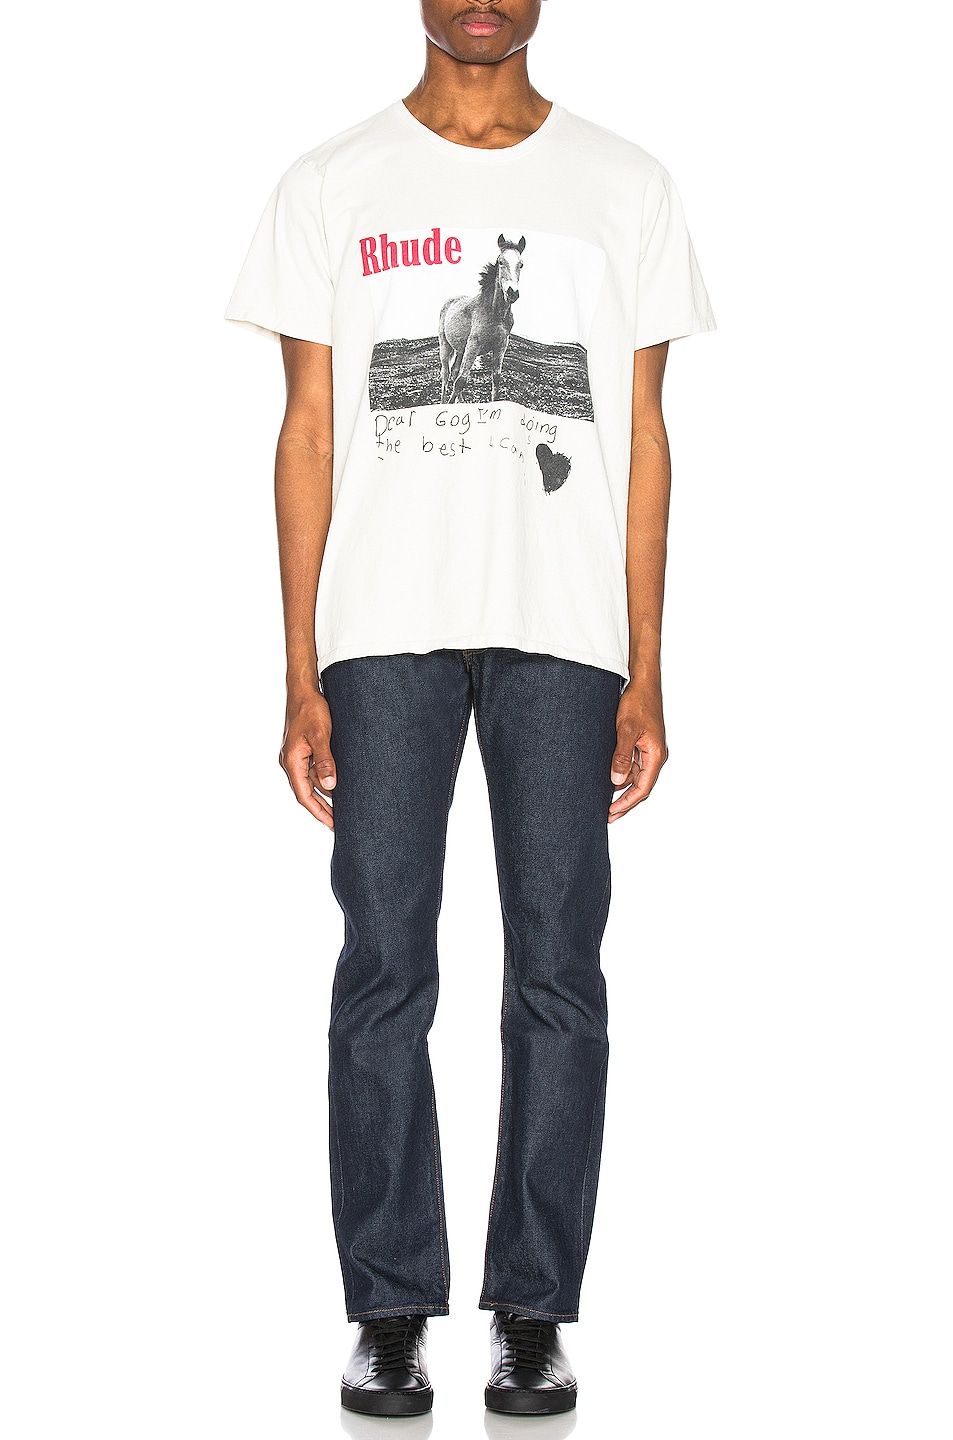 LEVI\ 511 Slim Jean Resin Rinse on sale